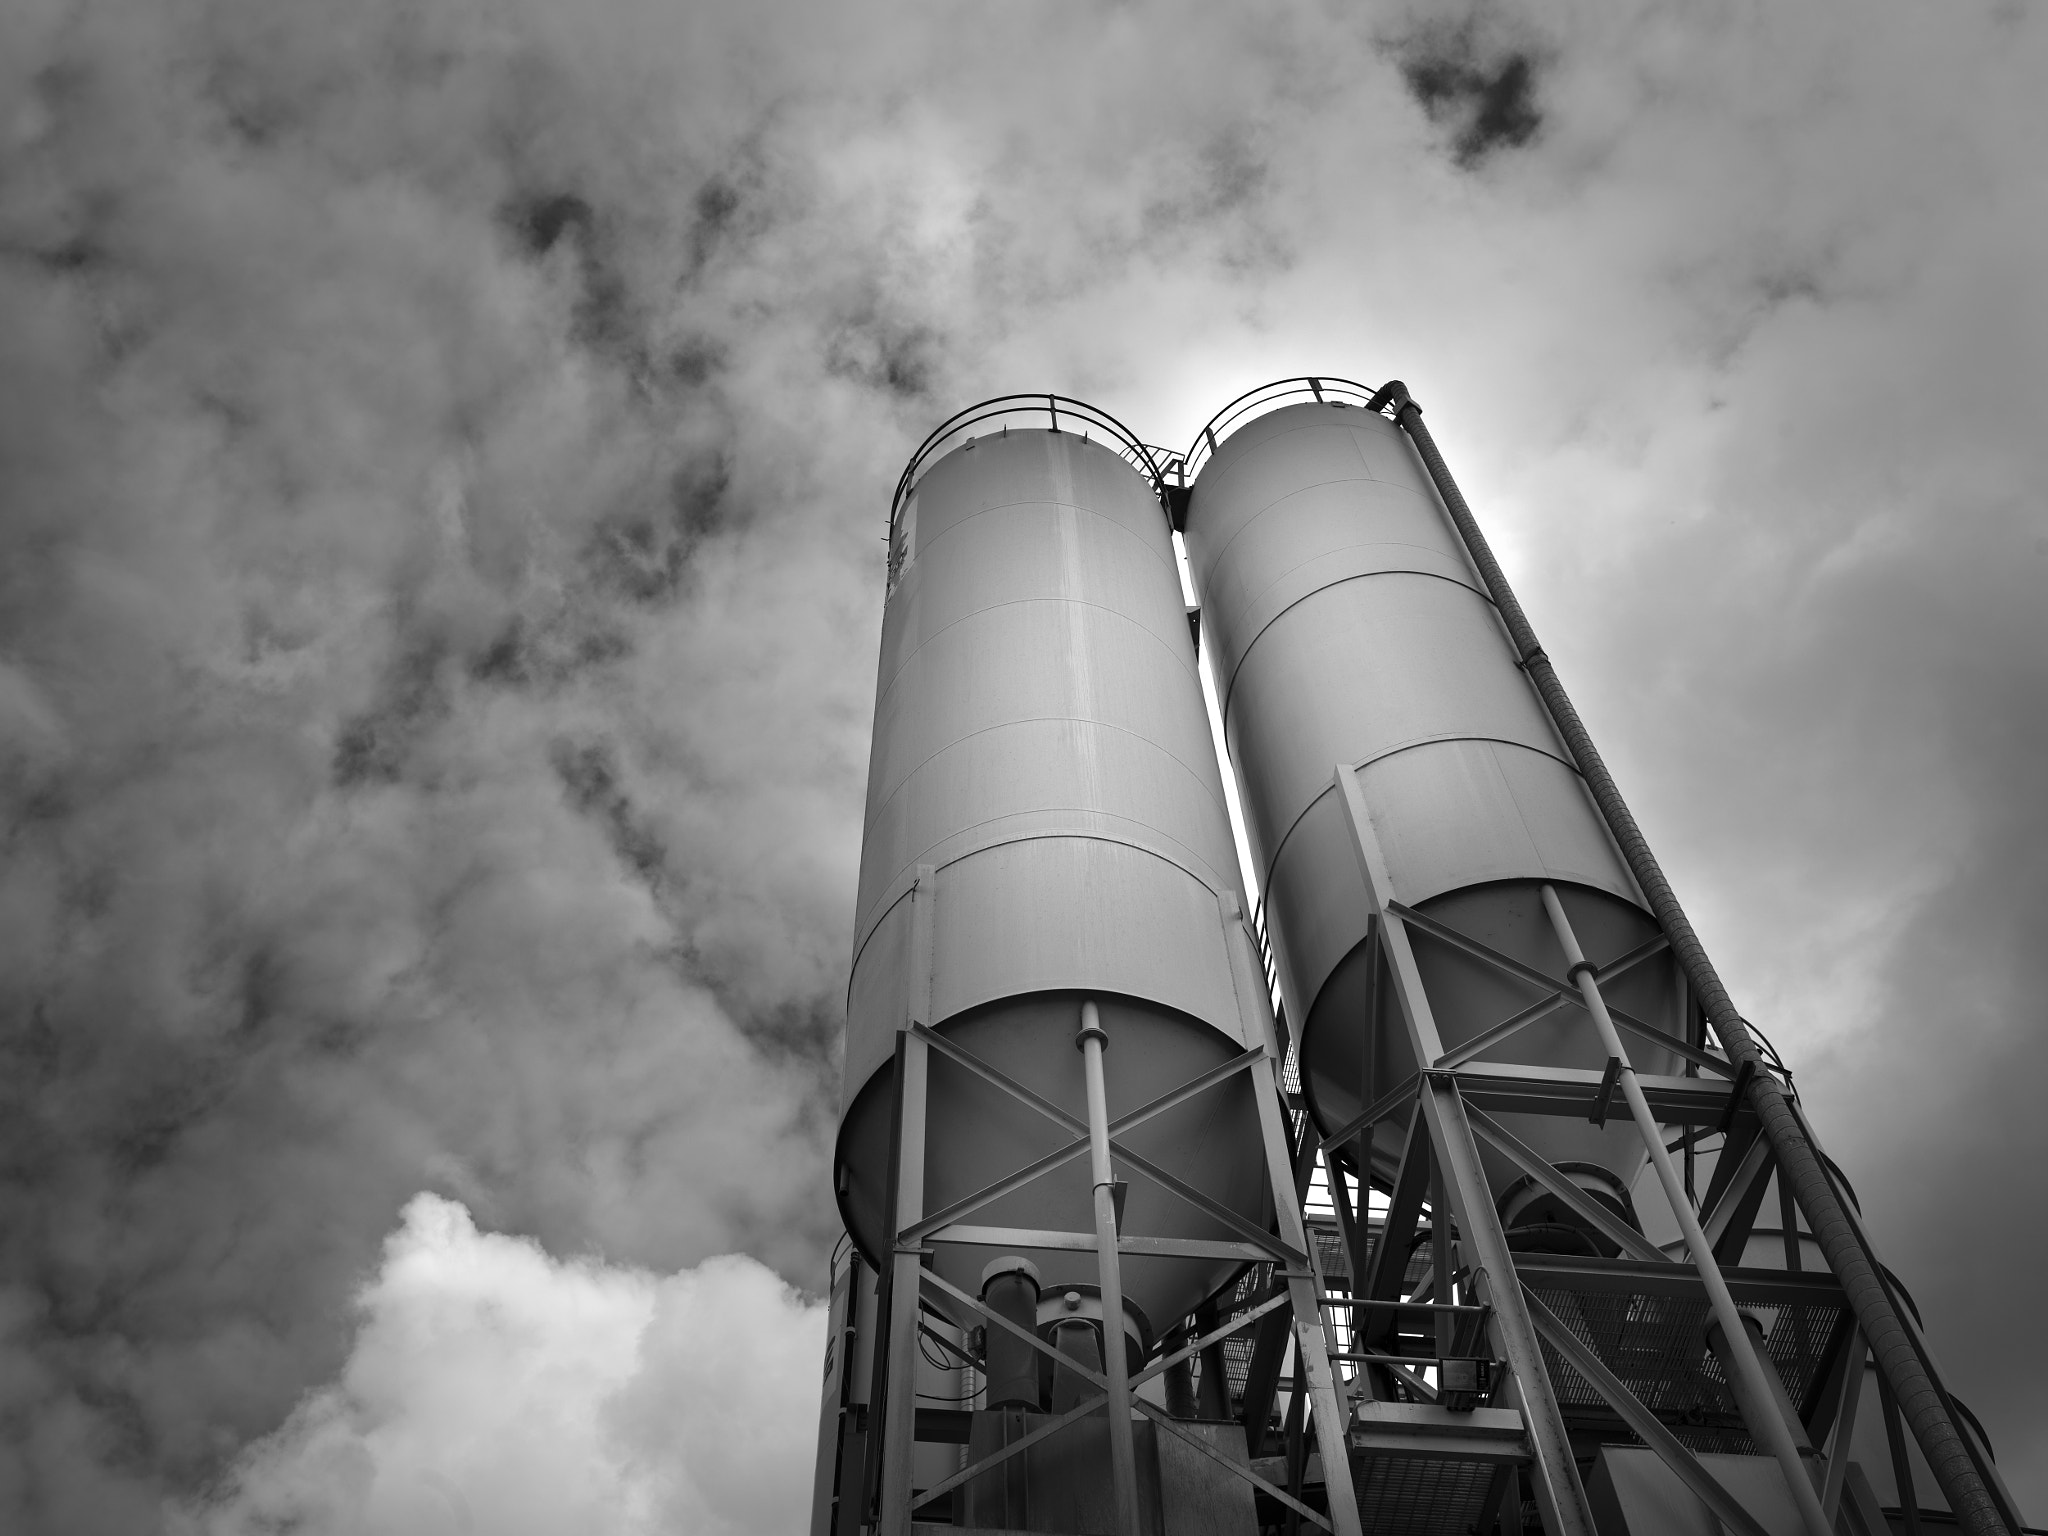 Photograph Concrete Plant, Australia by Antonio Ranieri on 500px